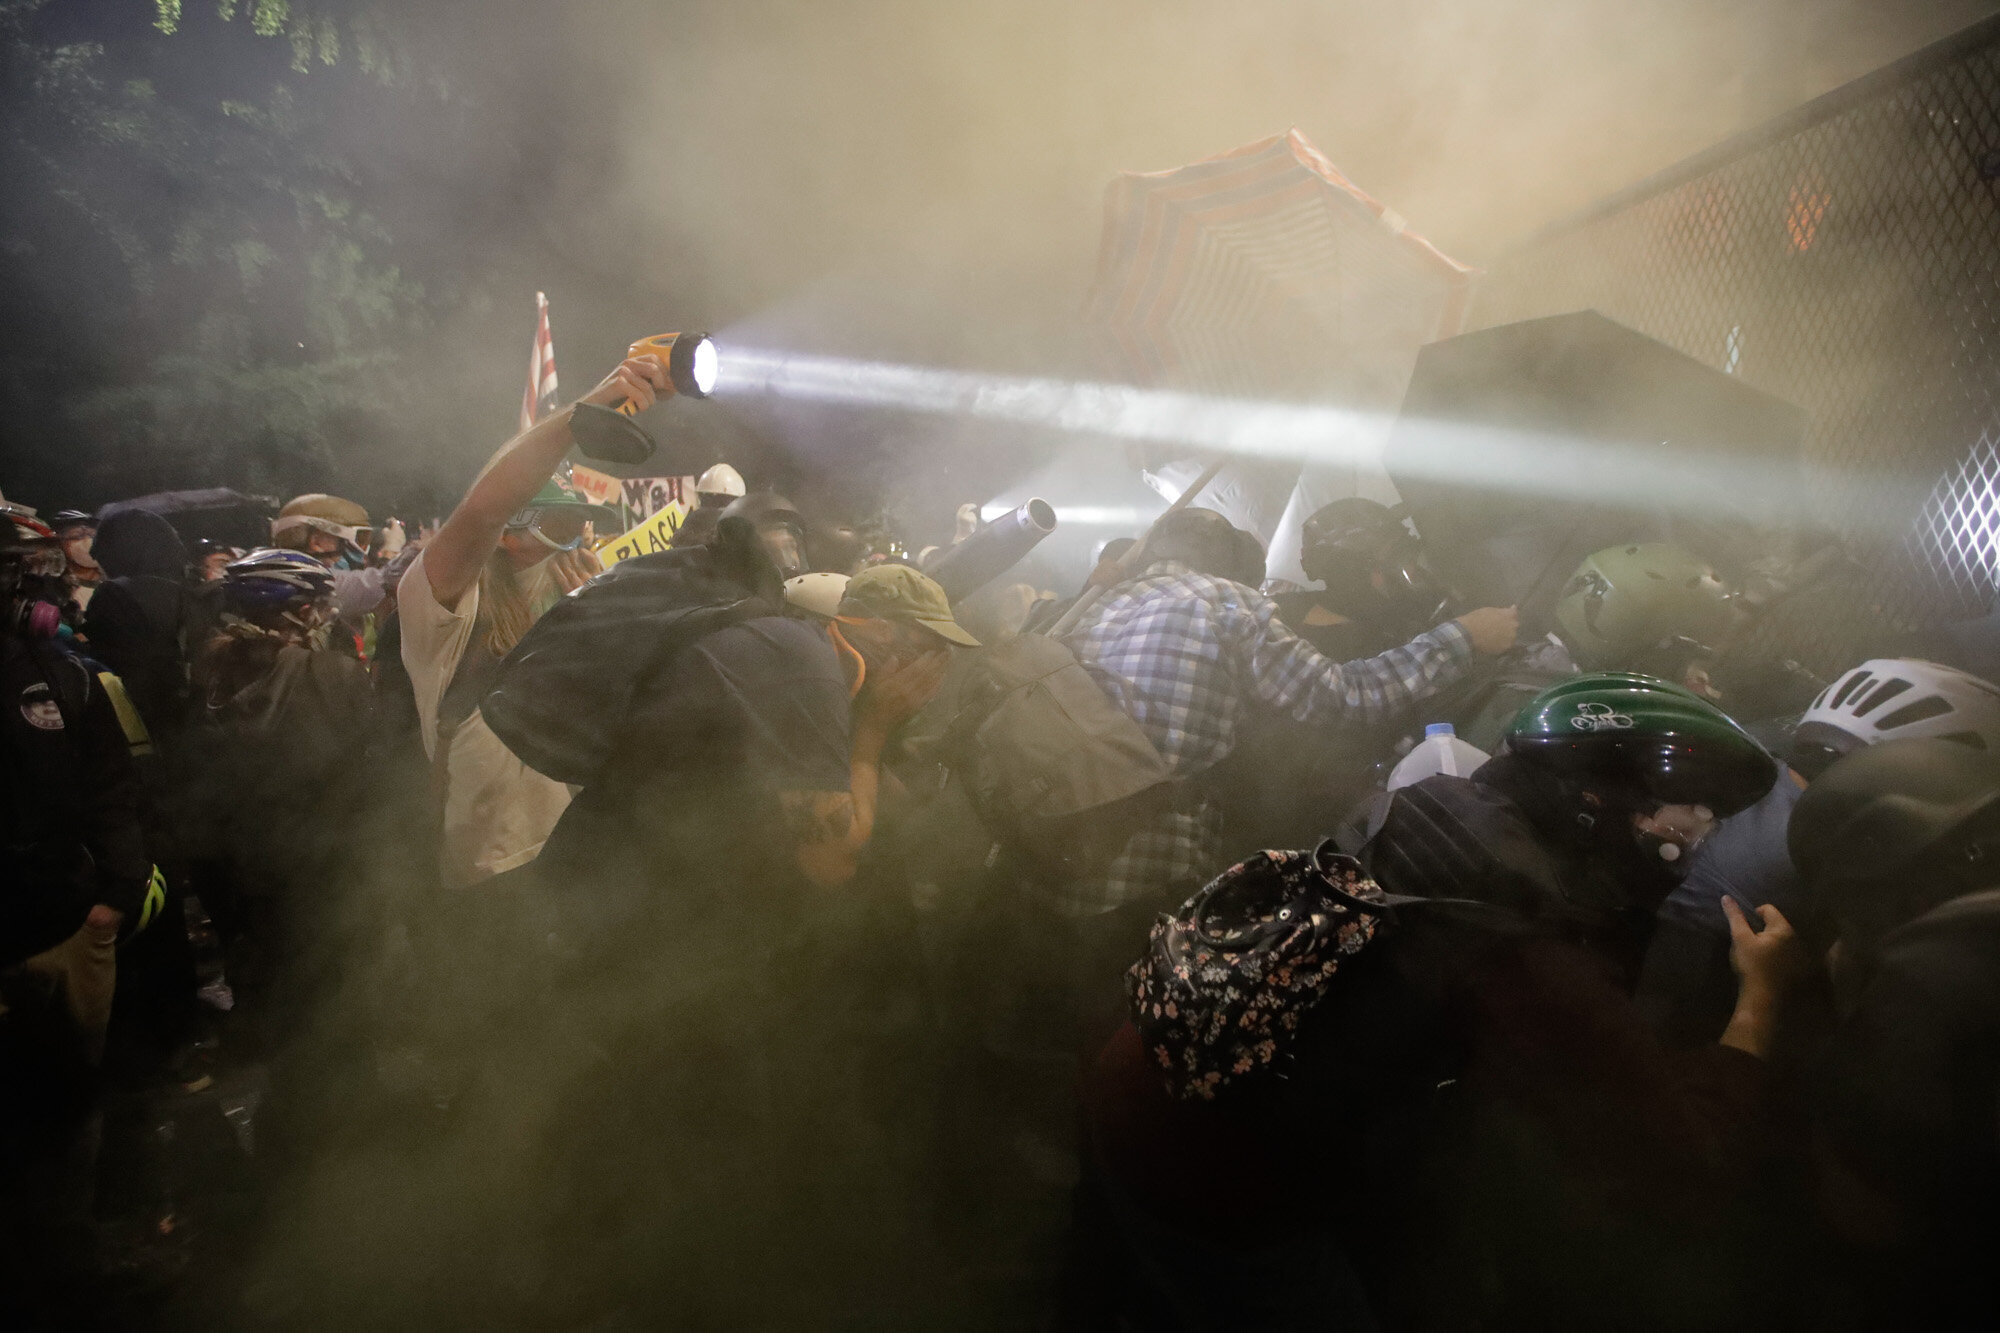 Demonstrators push on a fence as tear gas is deployed during a Black Lives Matter protest at the Mark O. Hatfield United States Courthouse in Portland, Ore., on July 25, 2020. (AP Photo/Marcio Jose Sanchez)